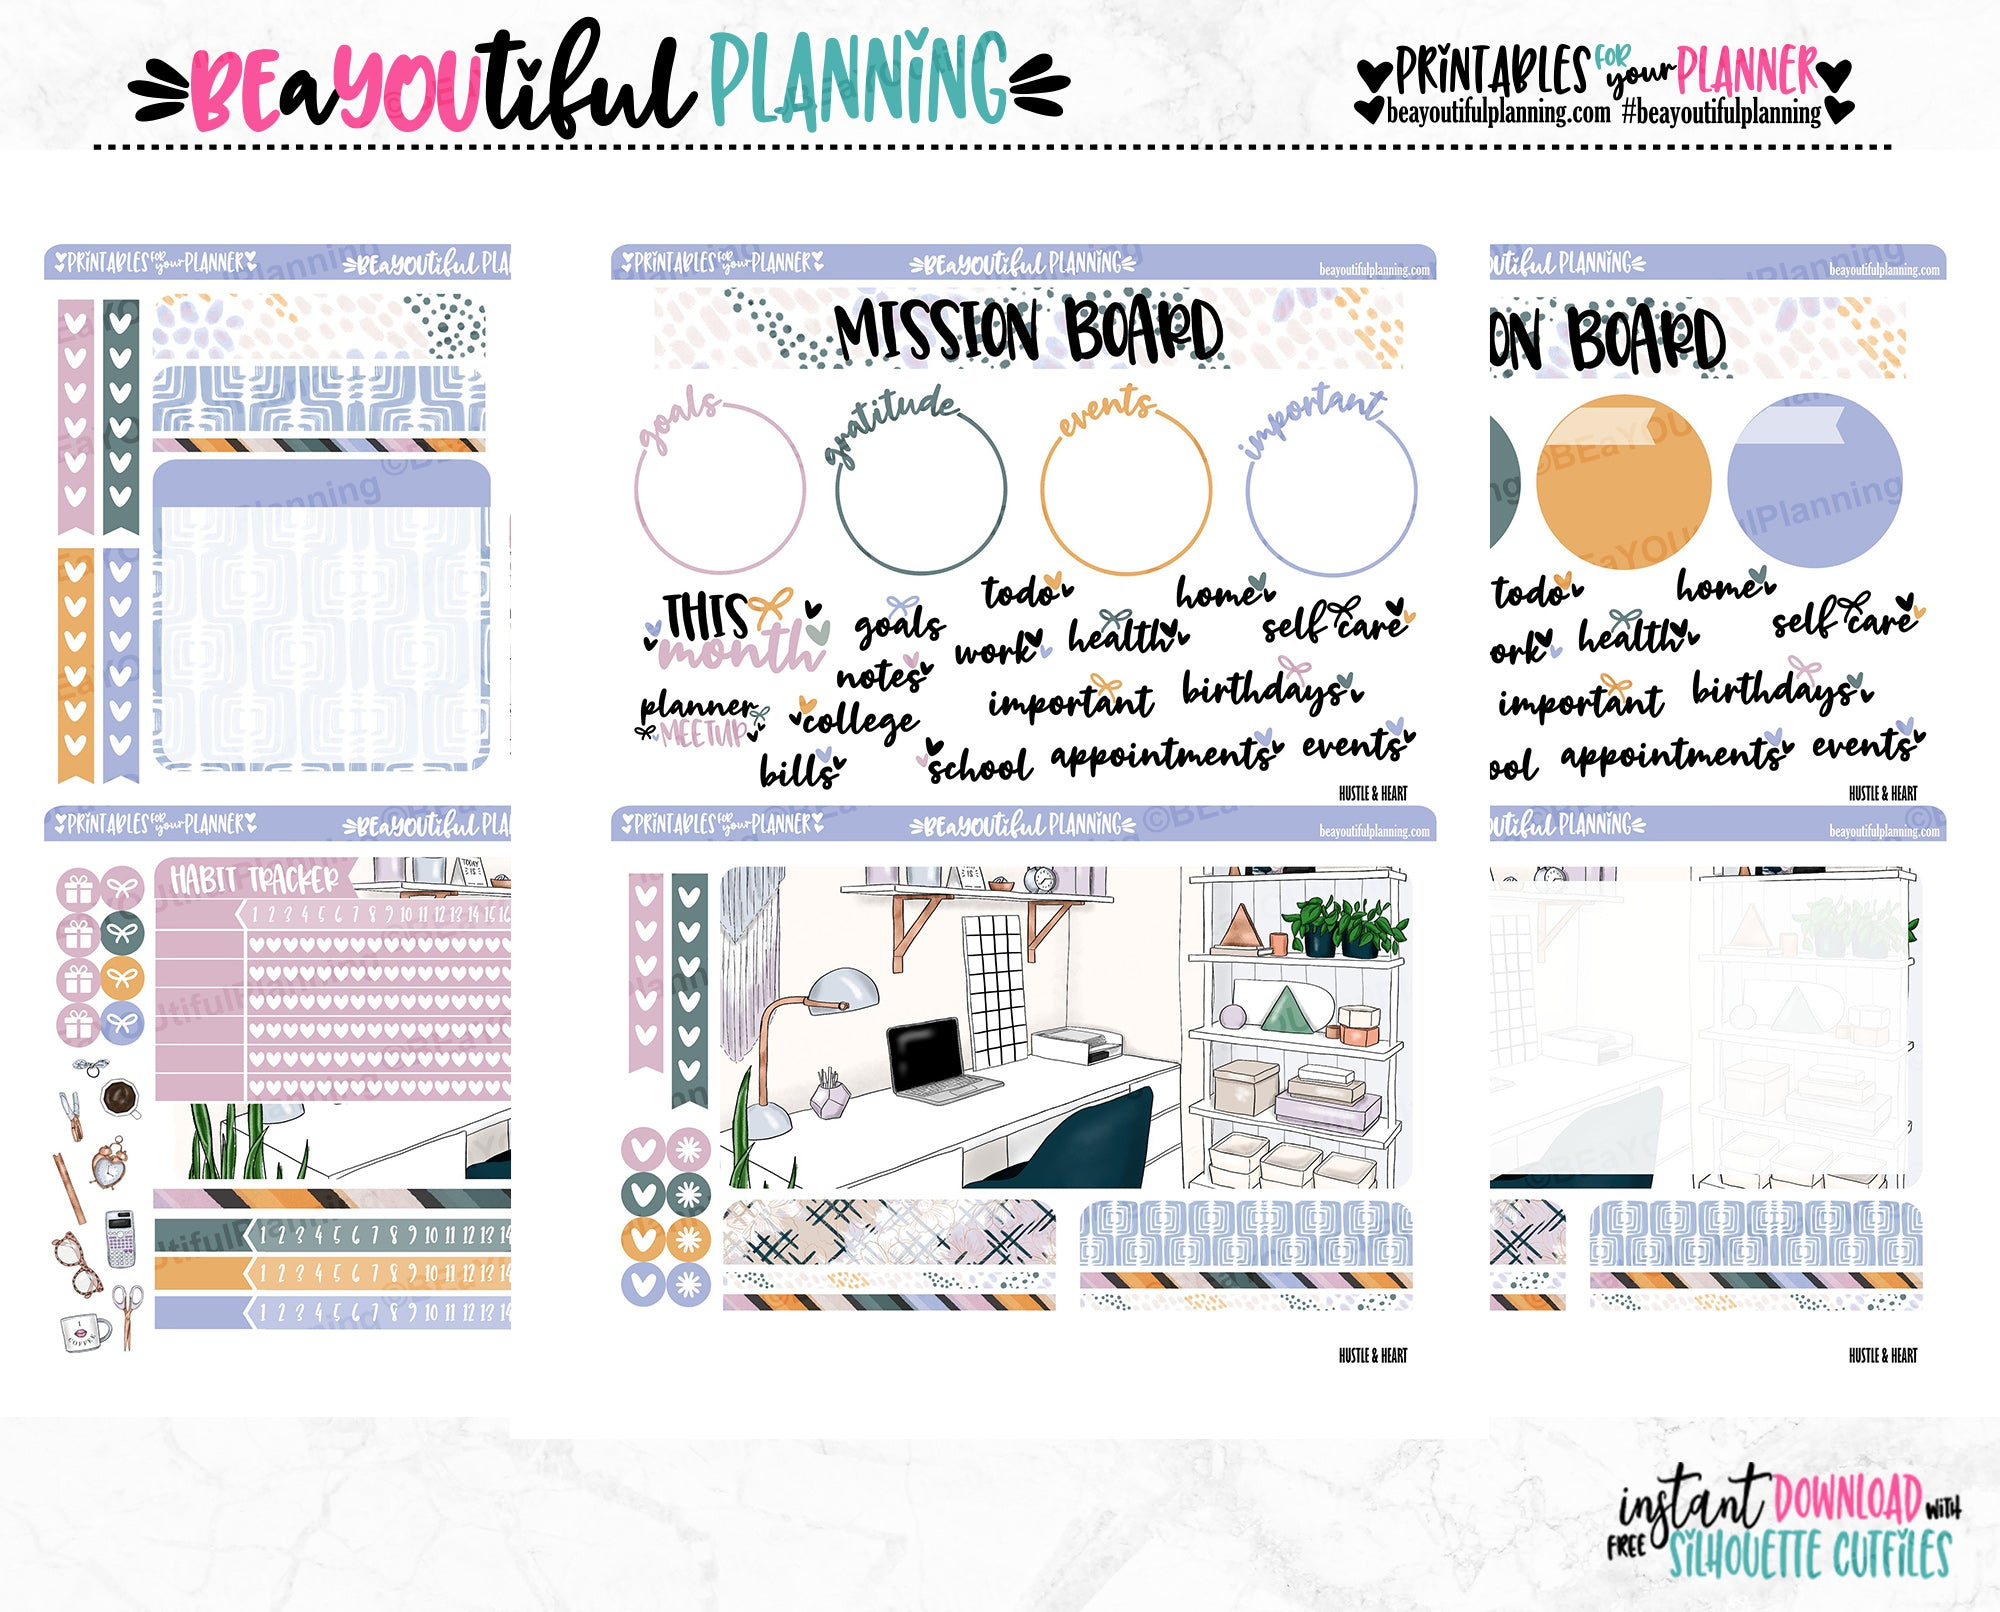 Hustle & Heart Notes Page Printable